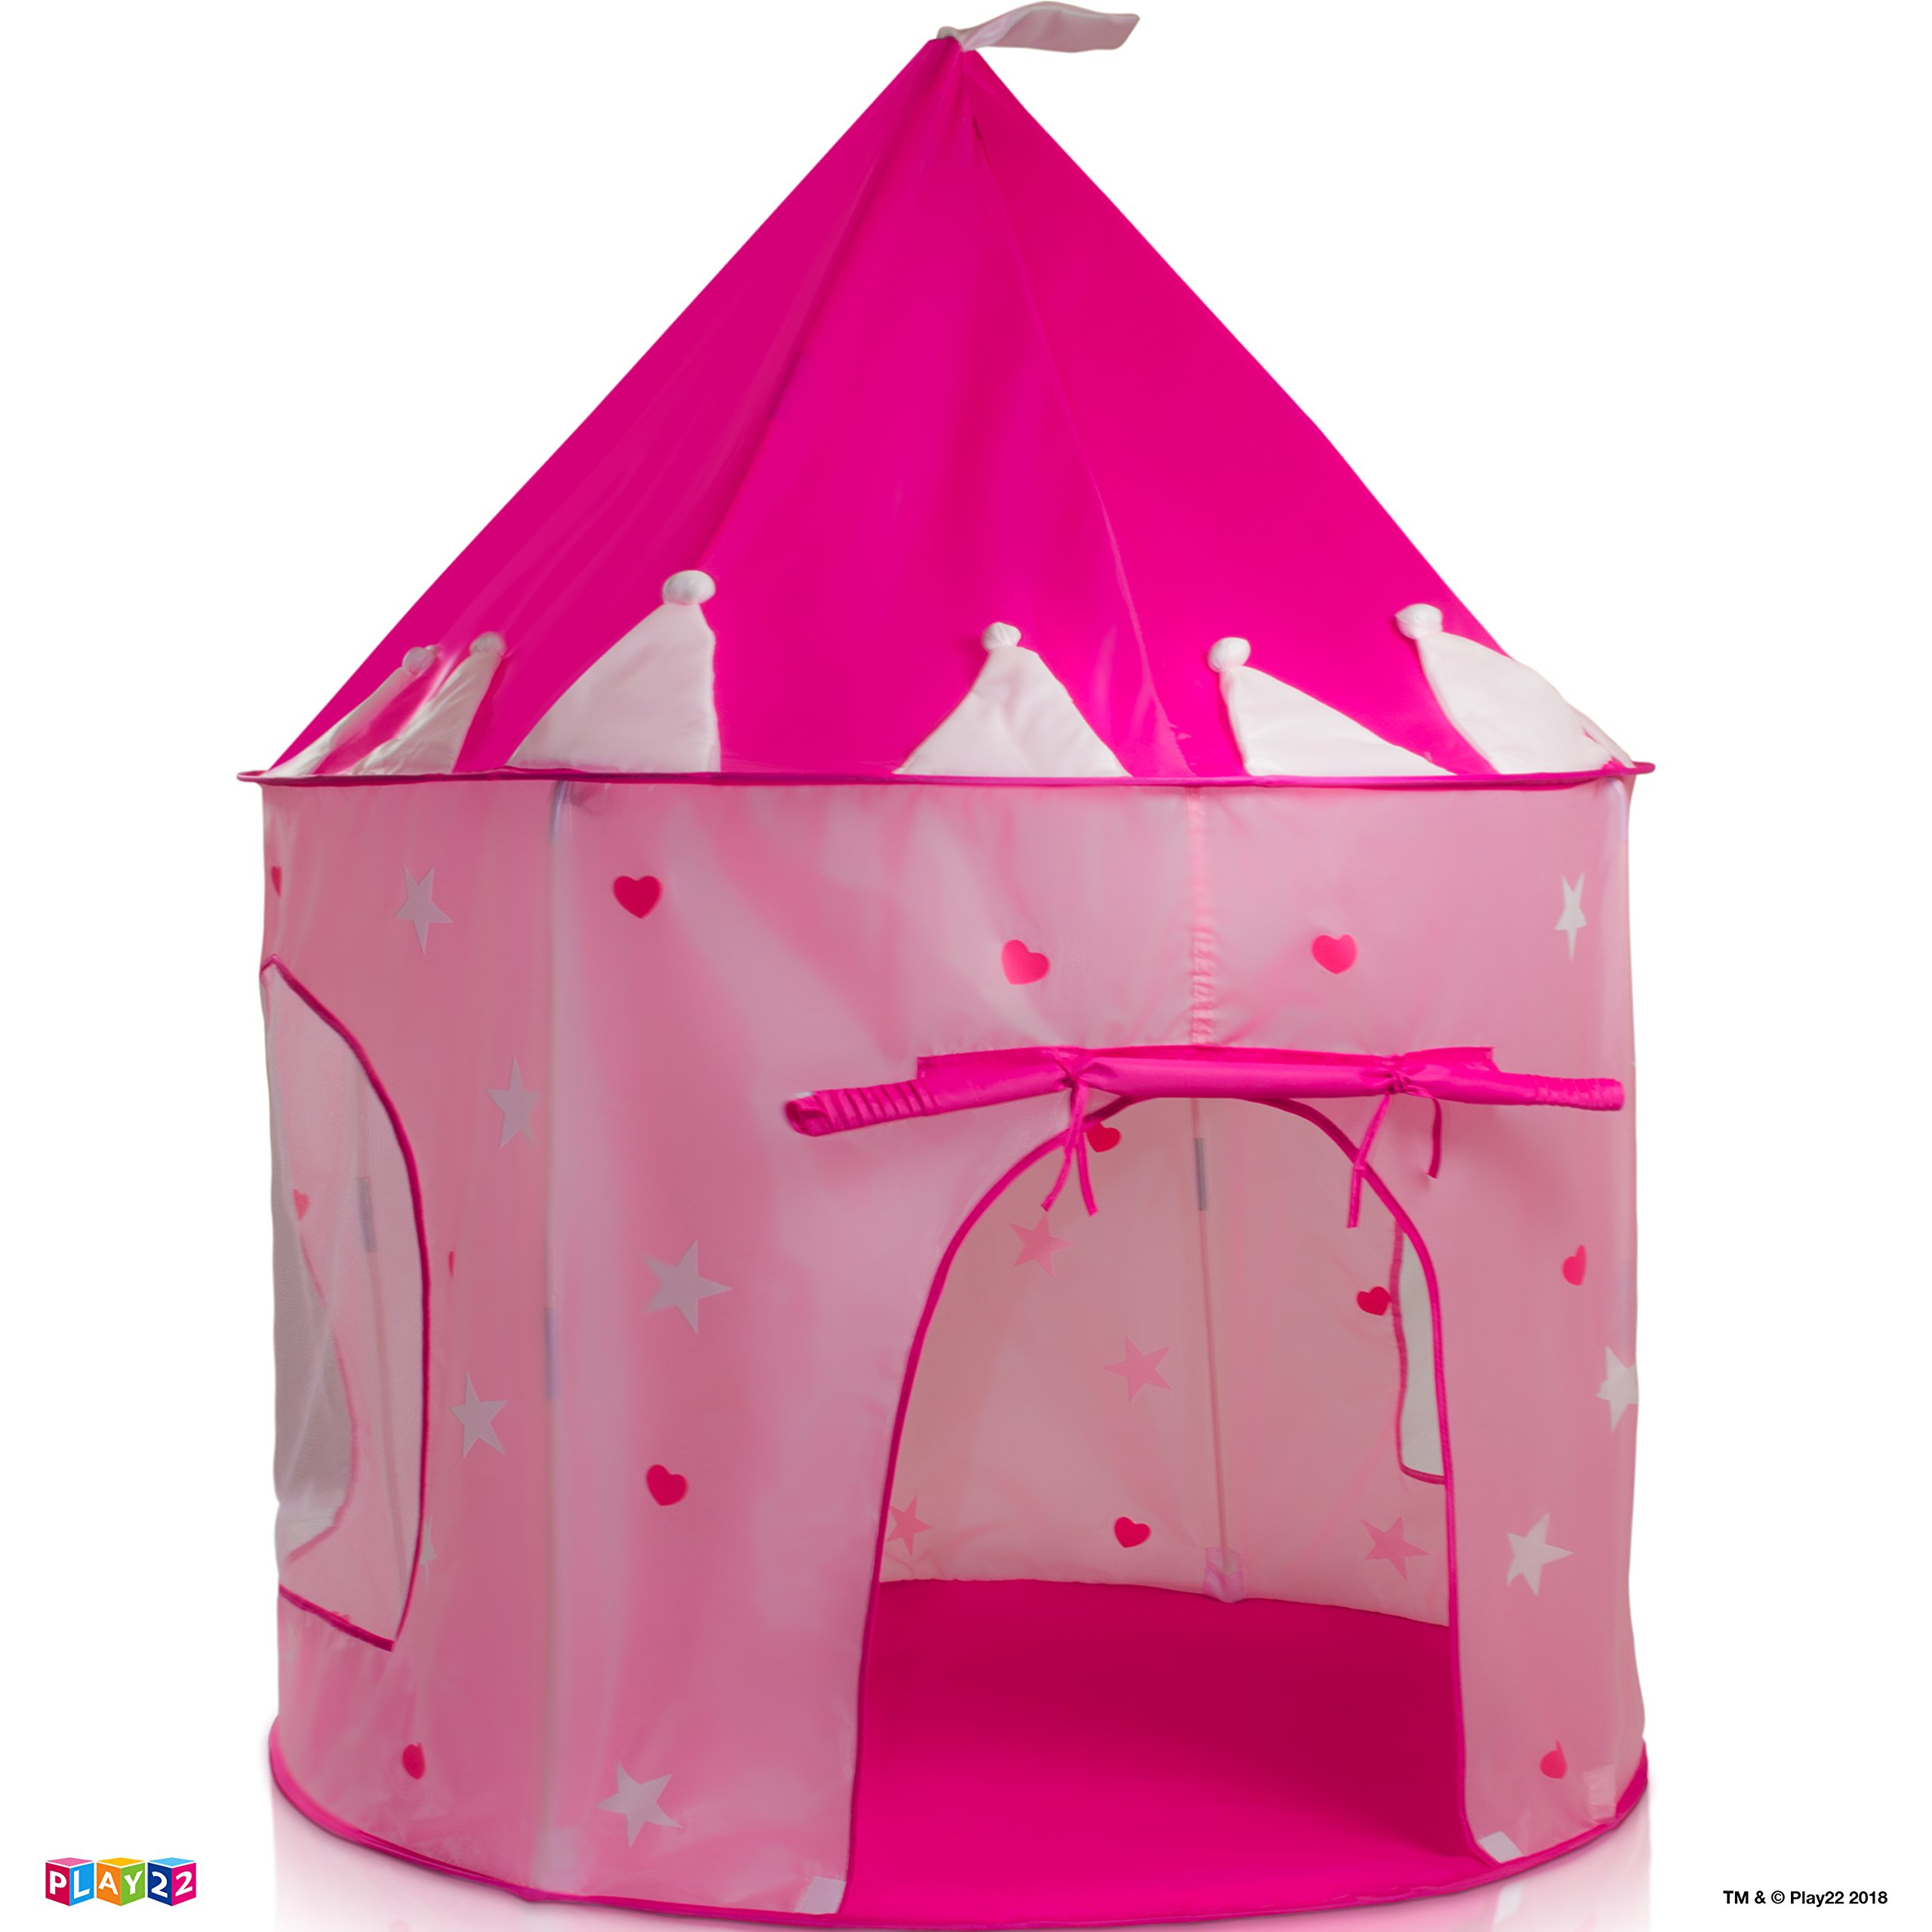 Play22 Play Tent Princess Castle Pink - Kids Tent Features Glow in The Dark Stars - Portable Kids Play Tent - Kids Pop Up Tent Foldable Into A Carrying Bag - Indoor and Outdoor Use - Original by Play22 (Image #8)